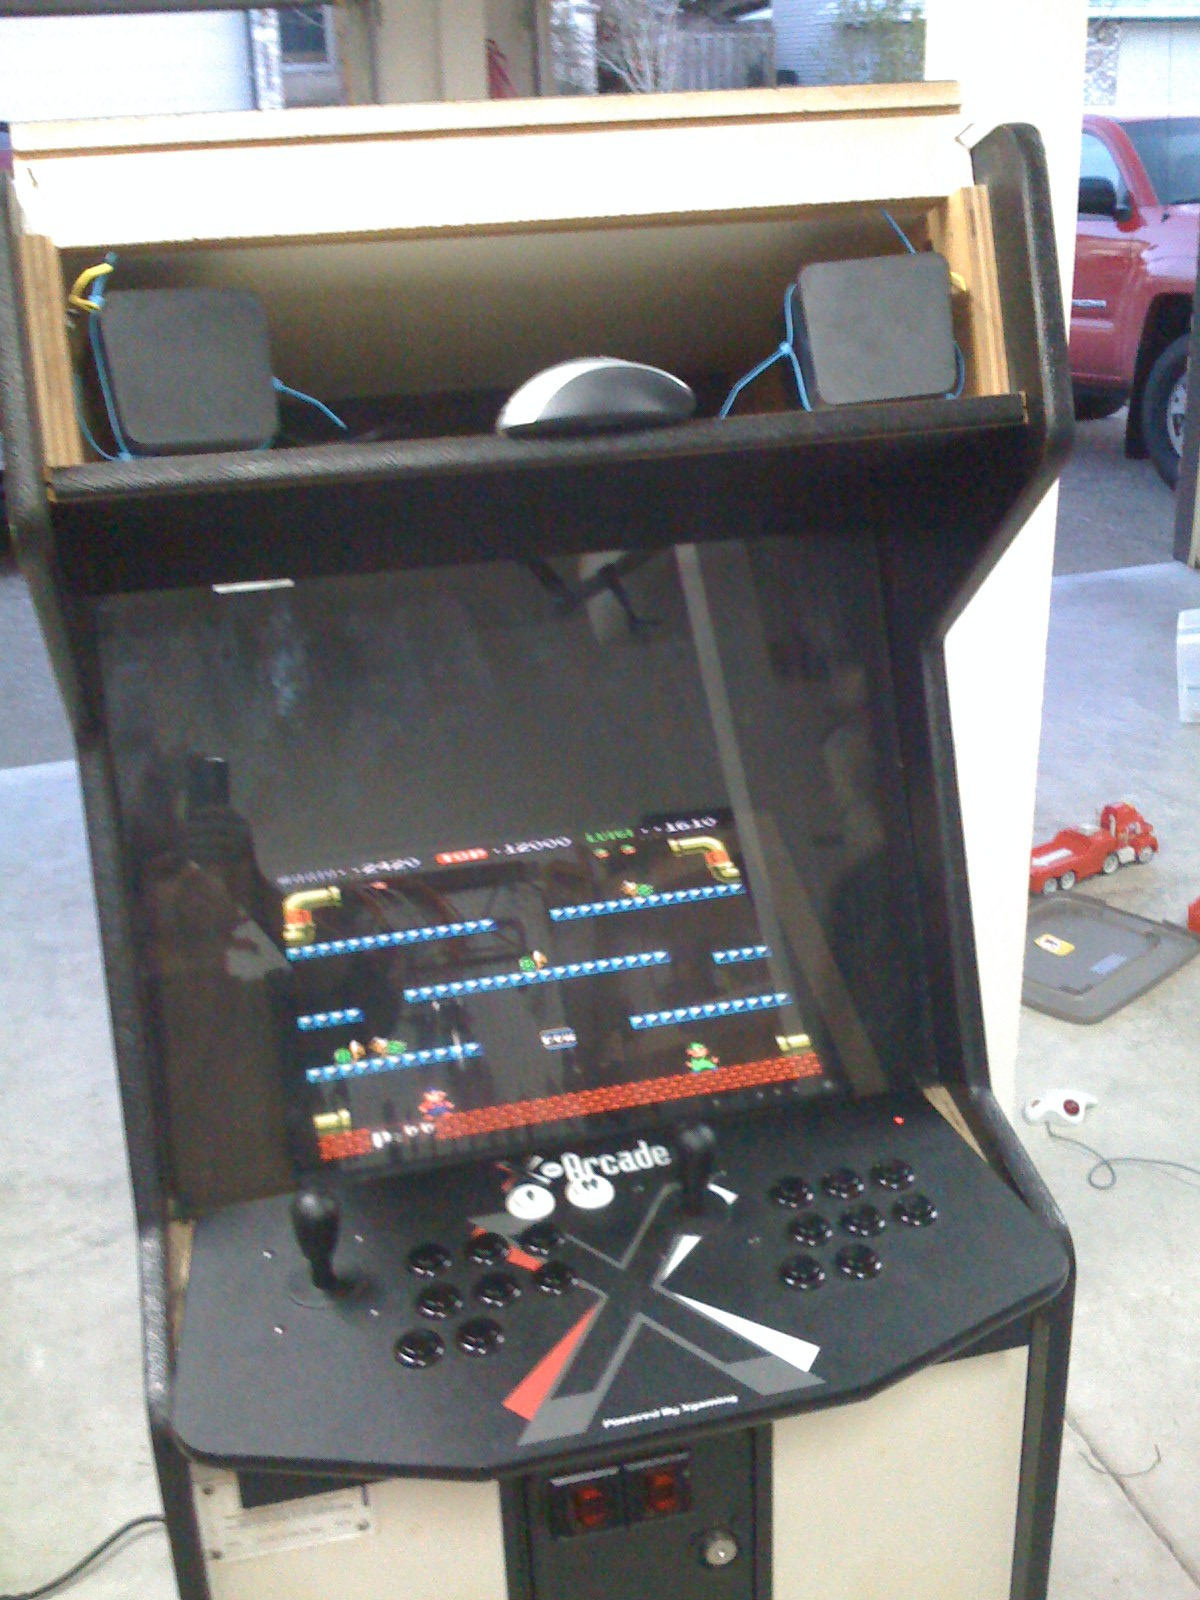 Building your own arcade cabinet for geeks part 2 the monitor img0093 malvernweather Gallery